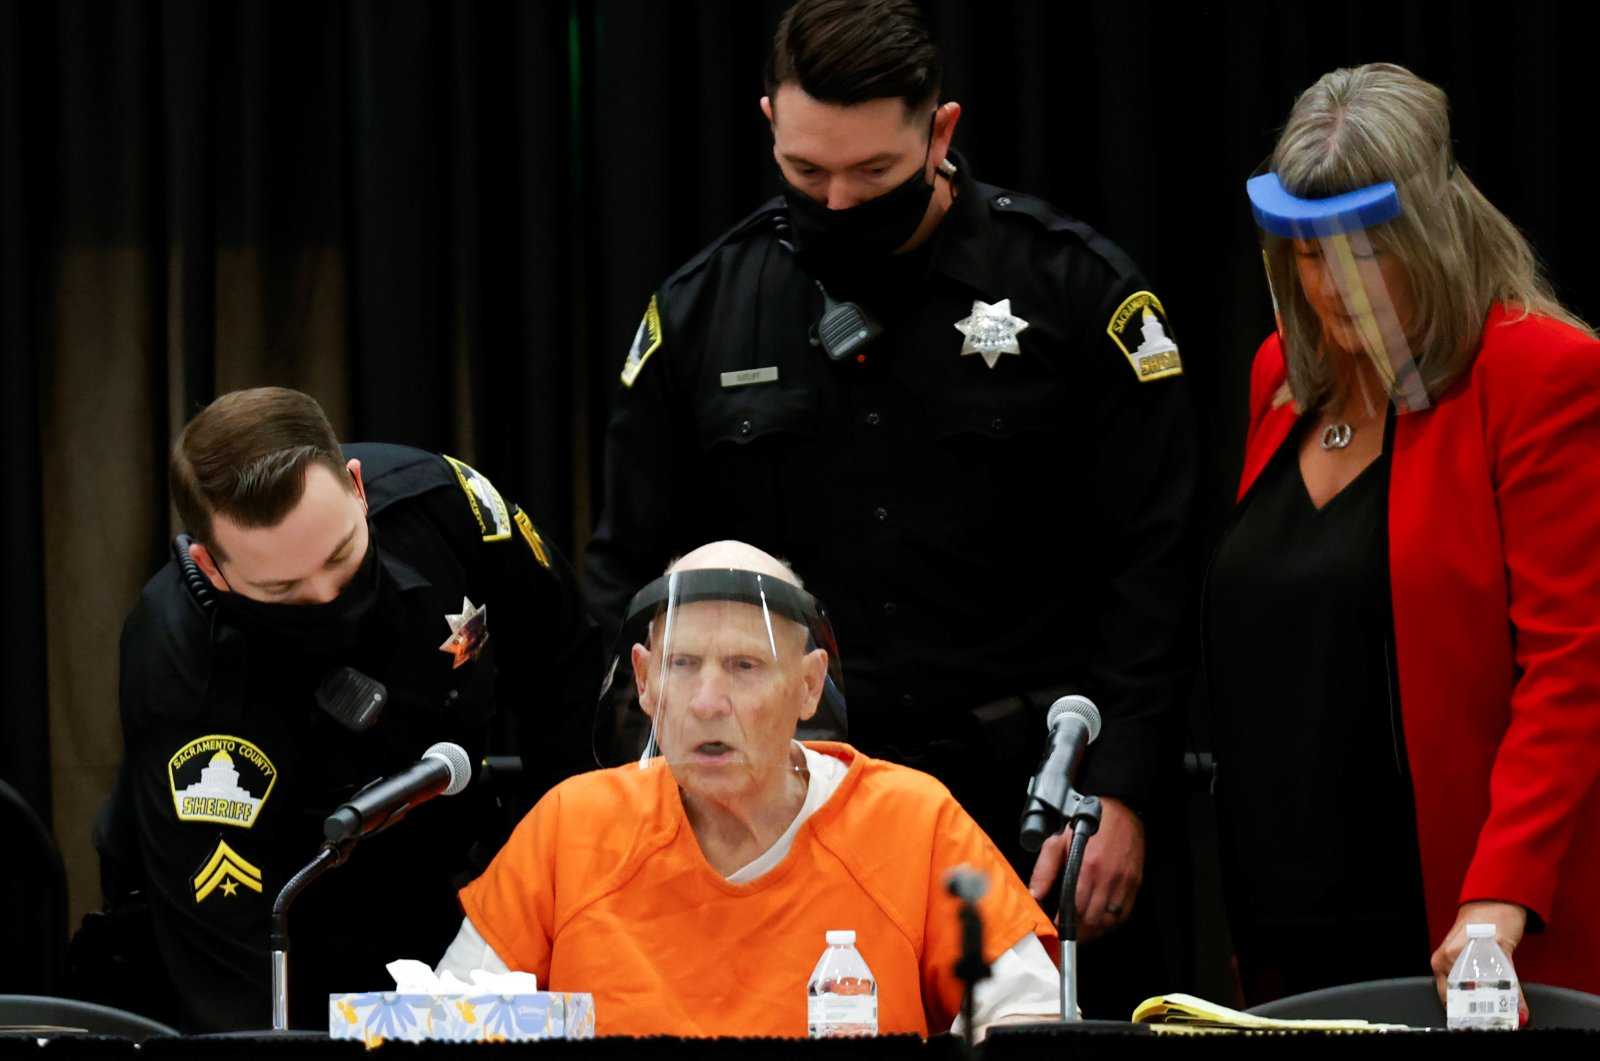 """Former police officer Joseph James DeAngelo Jr. attends a hearing on crimes attributed to the """"Golden State Killer"""" at the Sacramento County courtroom, Sacramento, California, June 29, 2020. (REUTERS Photo)"""